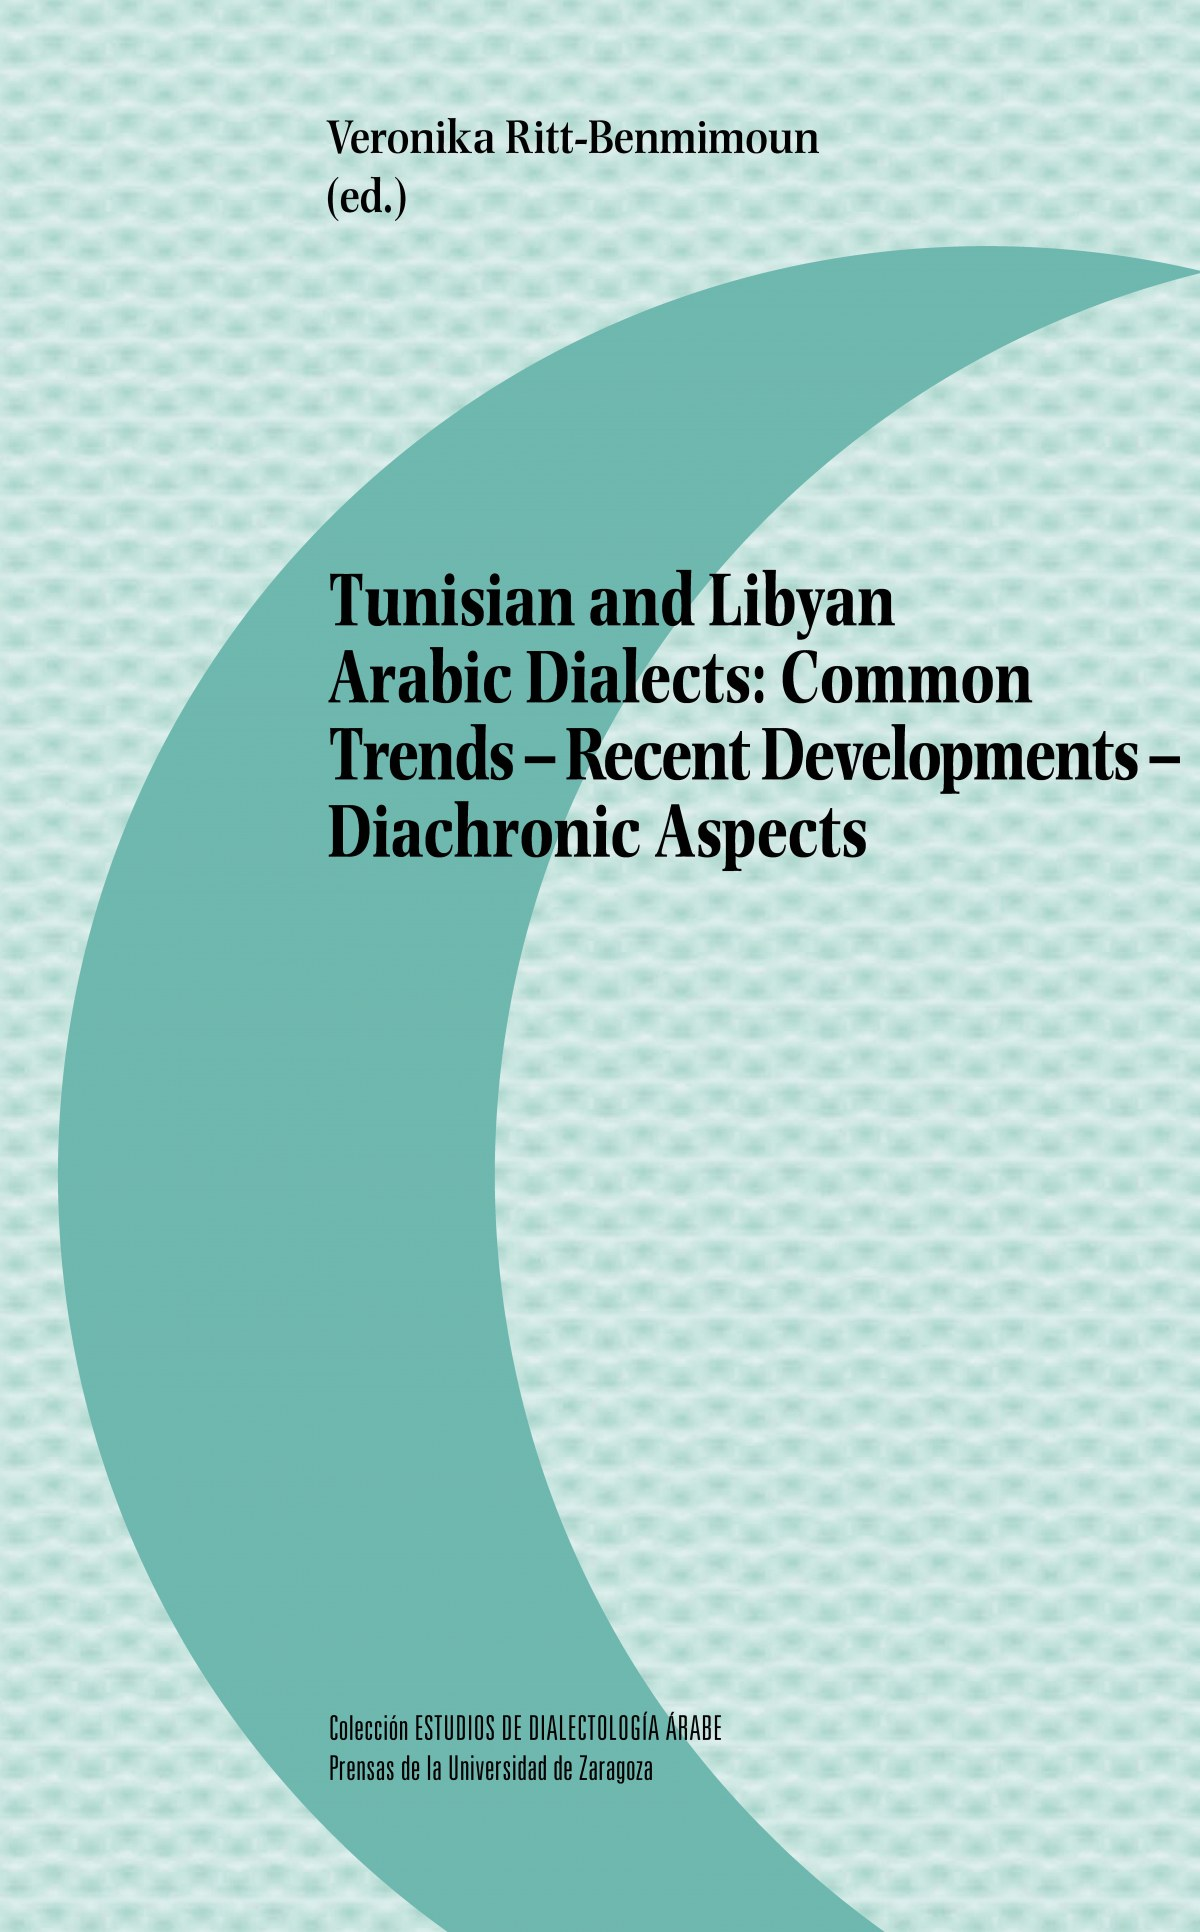 TURISIAN AND LIBYAN ARABIC DIALECTS